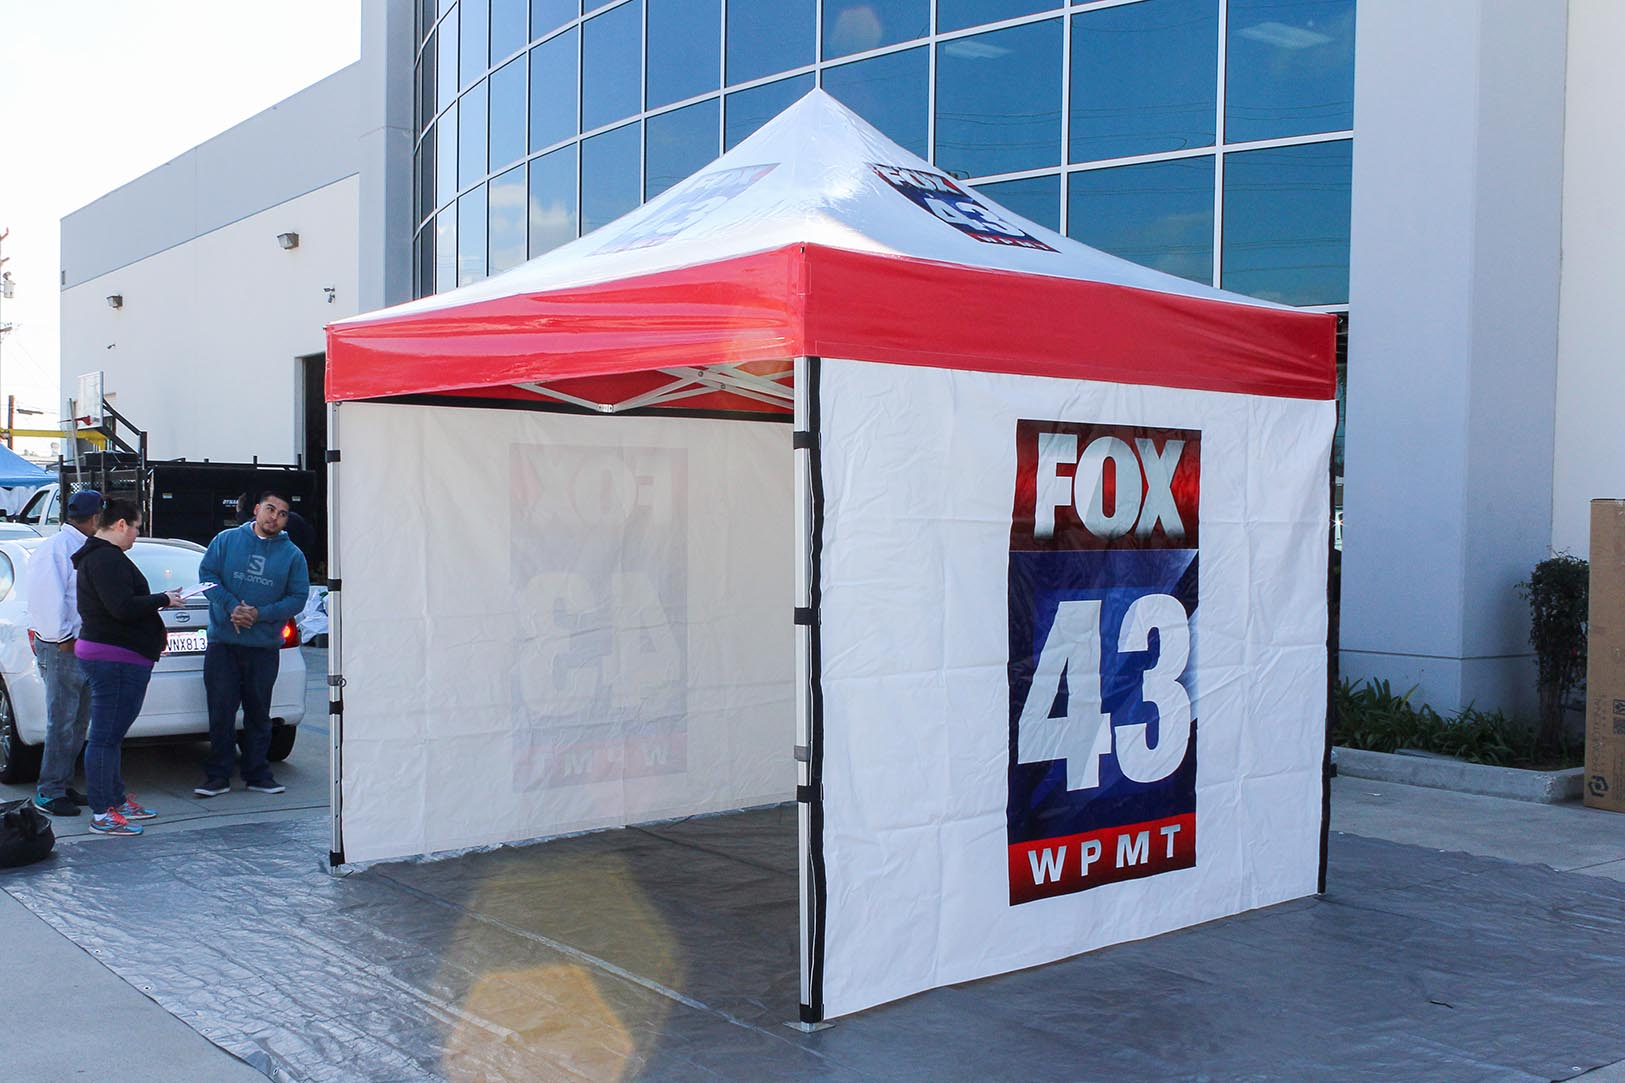 fox-43-printed-canopy